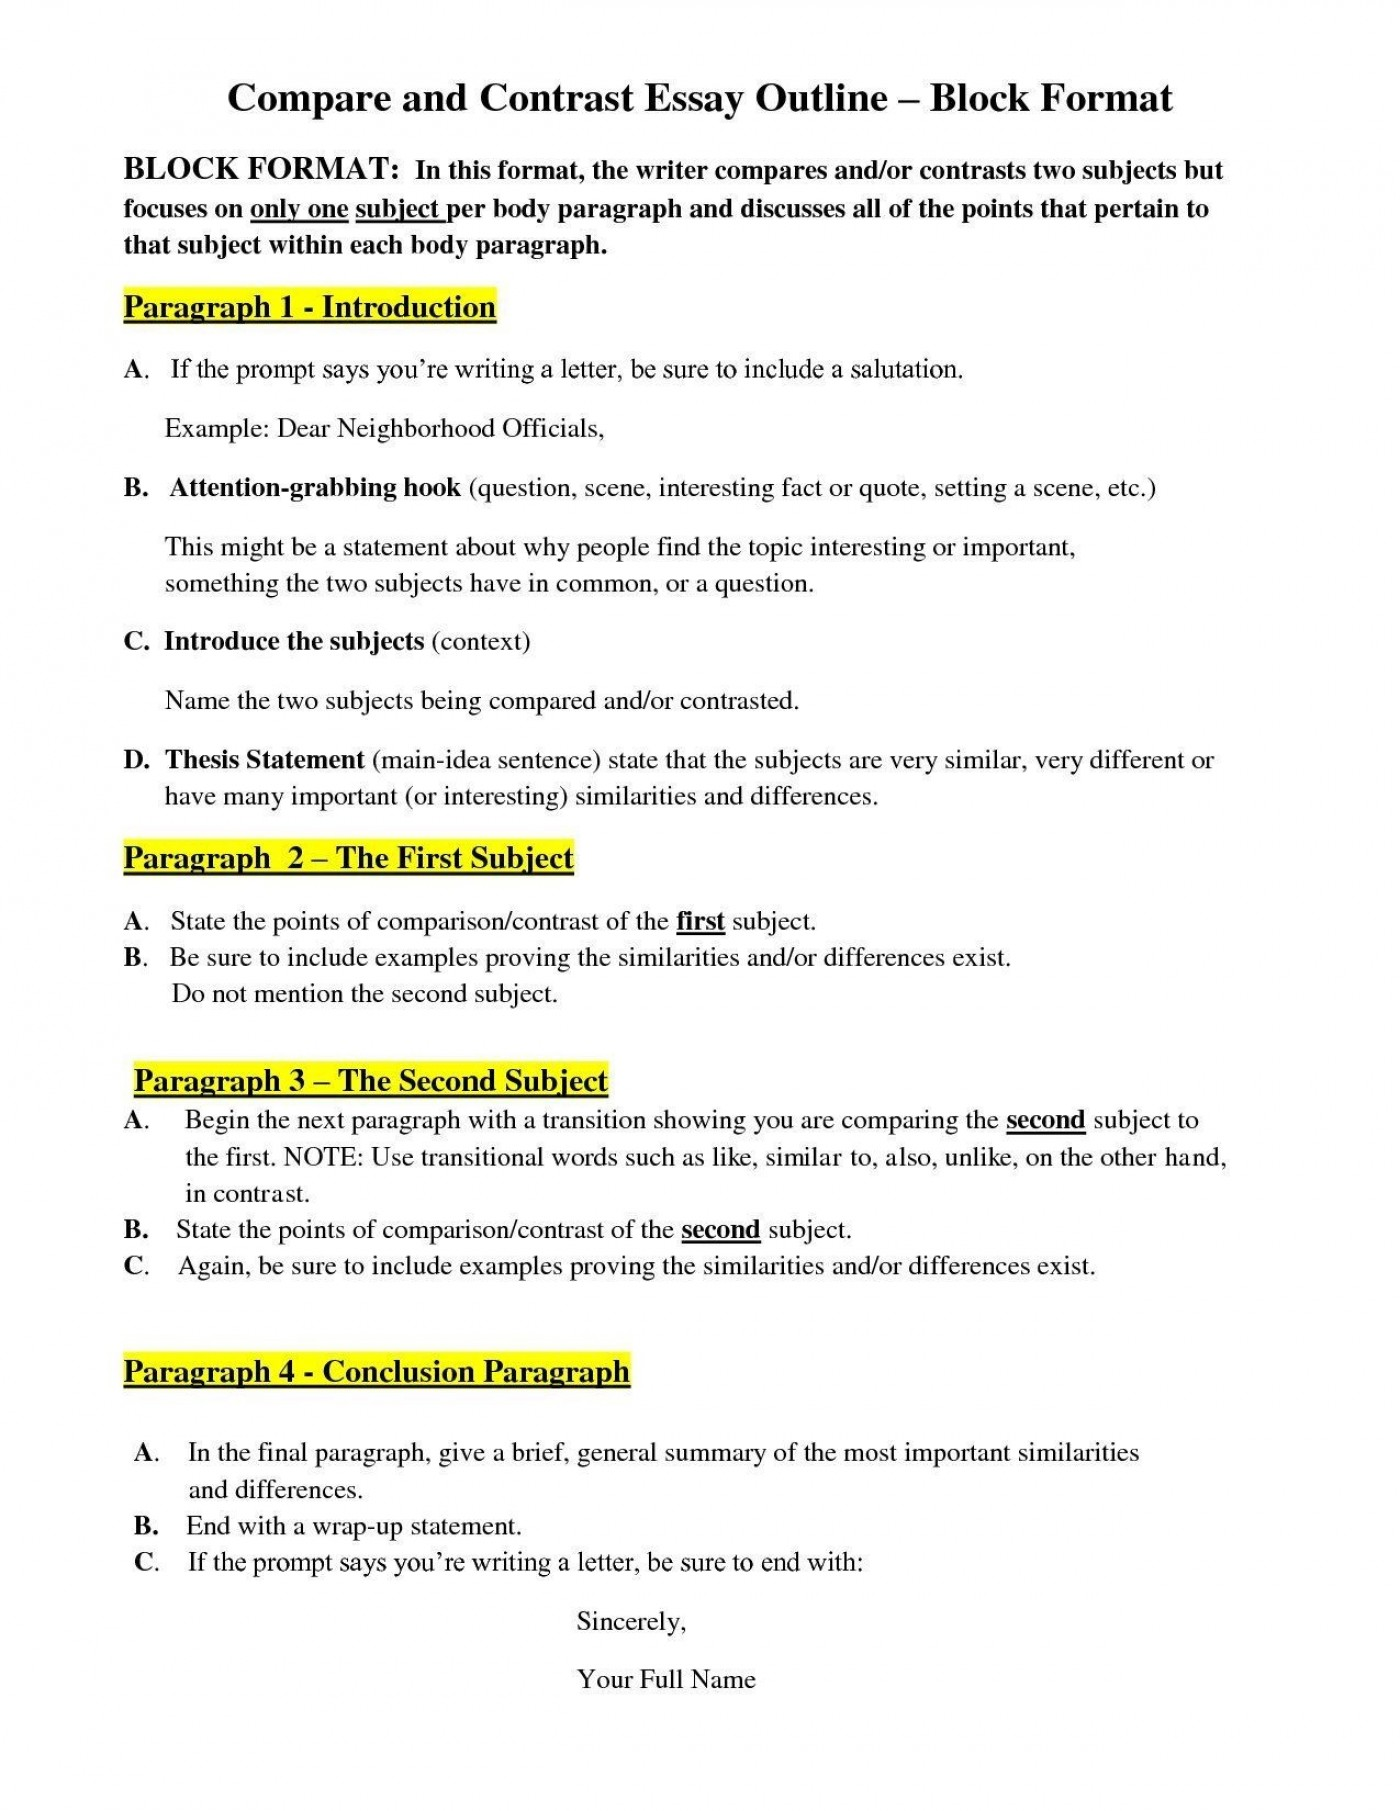 014 Essay Examplempare Andntrastmparison Best Examples Of Scenario In 6th Grade An Goo 3rd Food 5th Middle School Block Format Pdf High 4th Vs Striking Compare And Contrast Example College Level Topics 9th For Students 1400